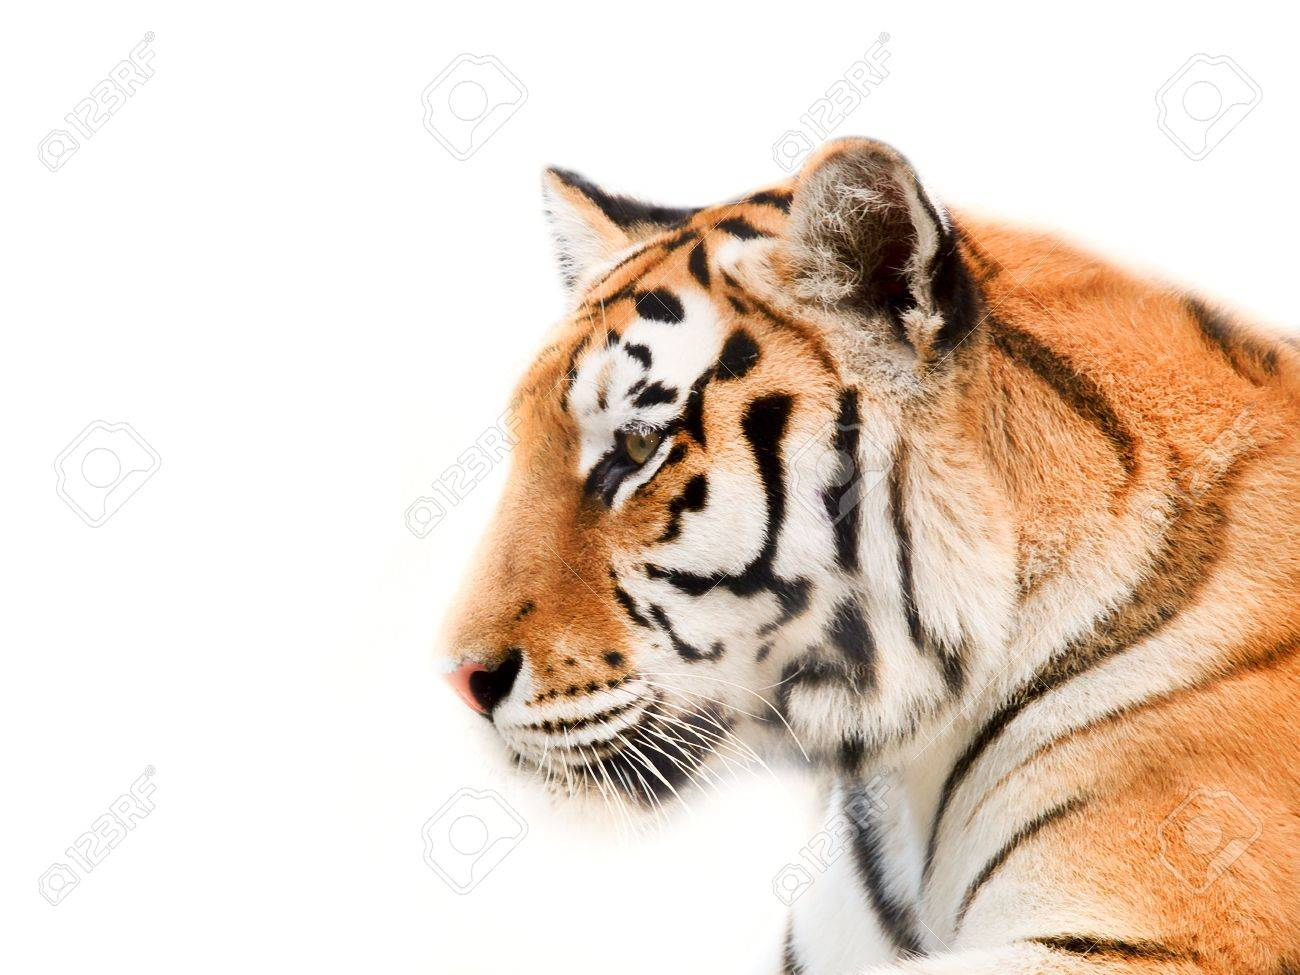 Big Tiger on a white background Stock Photo - 1253885